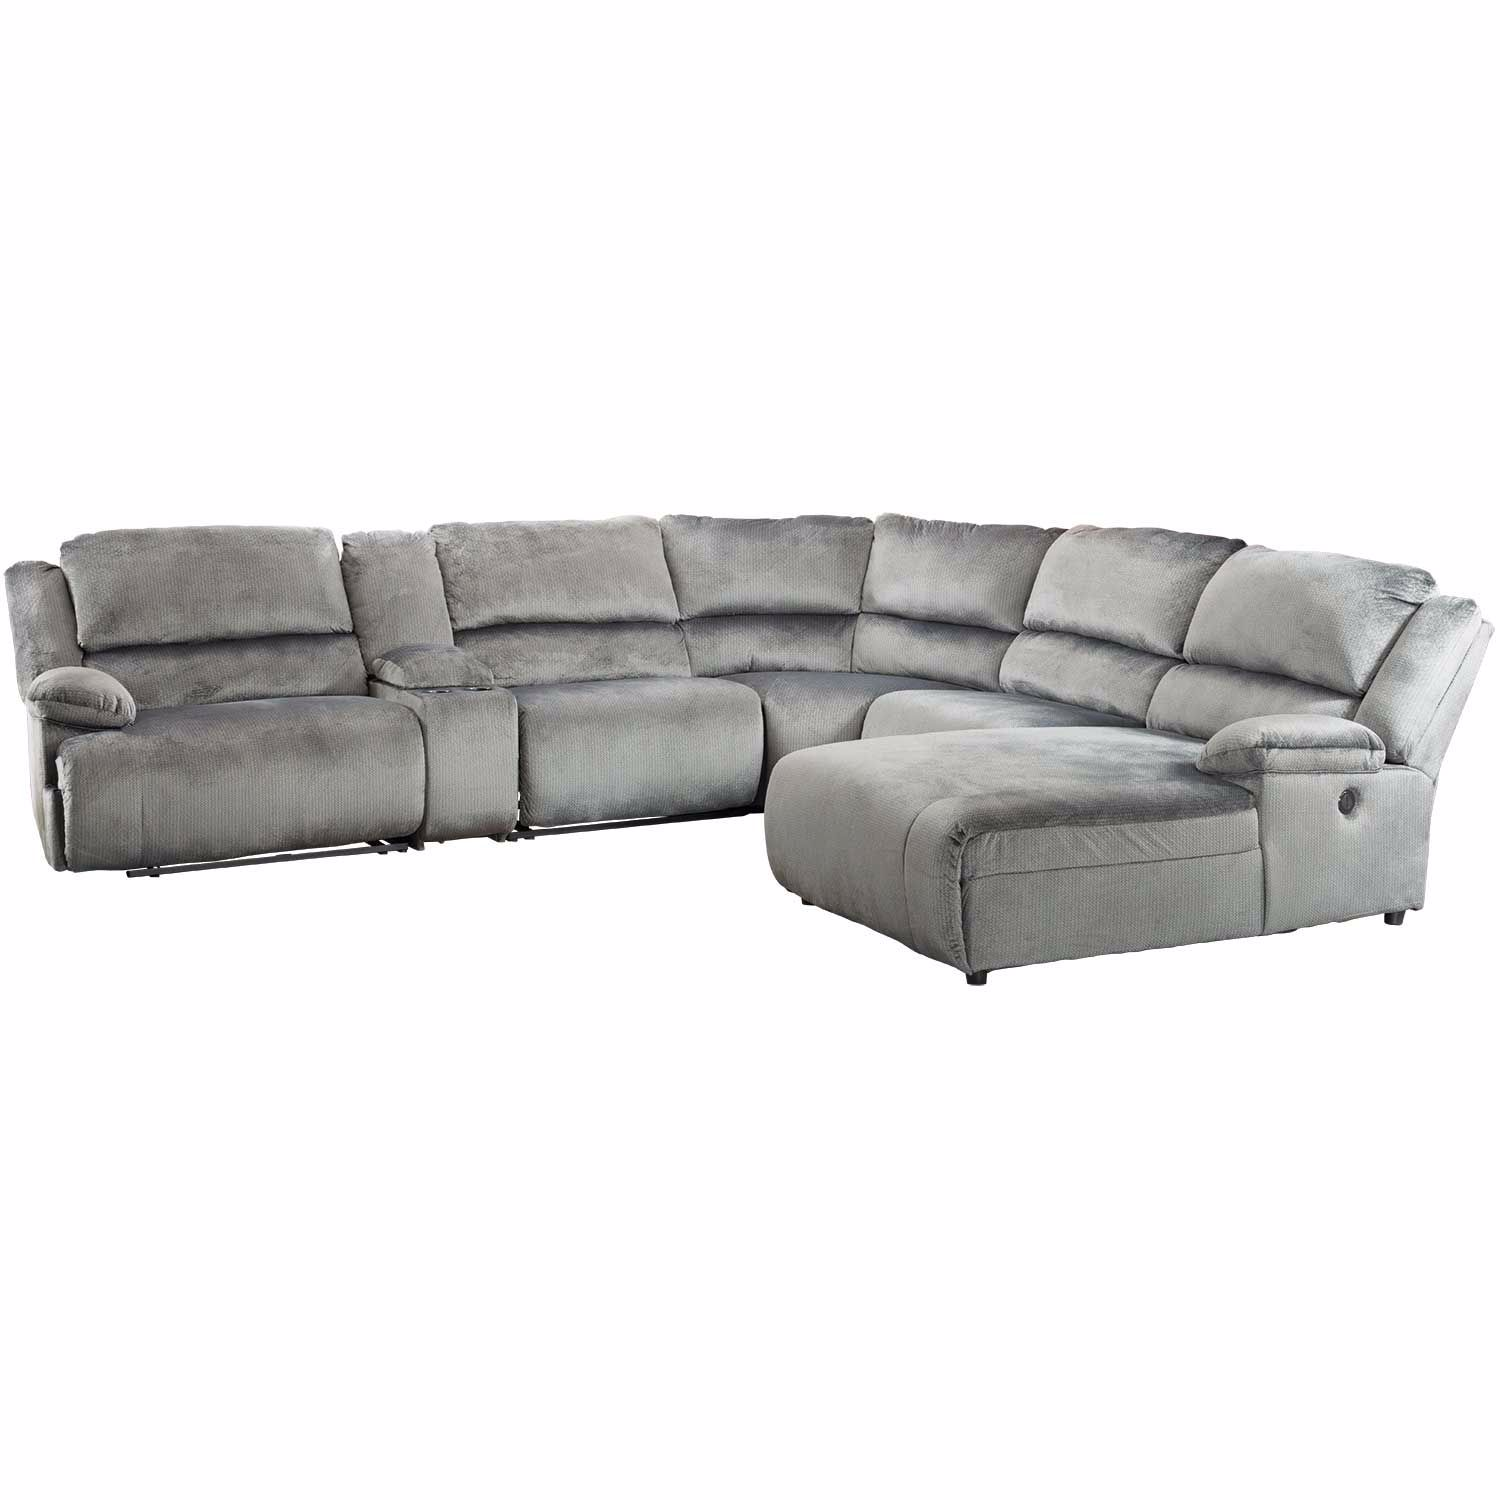 Clonmel 6 Piece Reclining Sectional with RAF Chaise